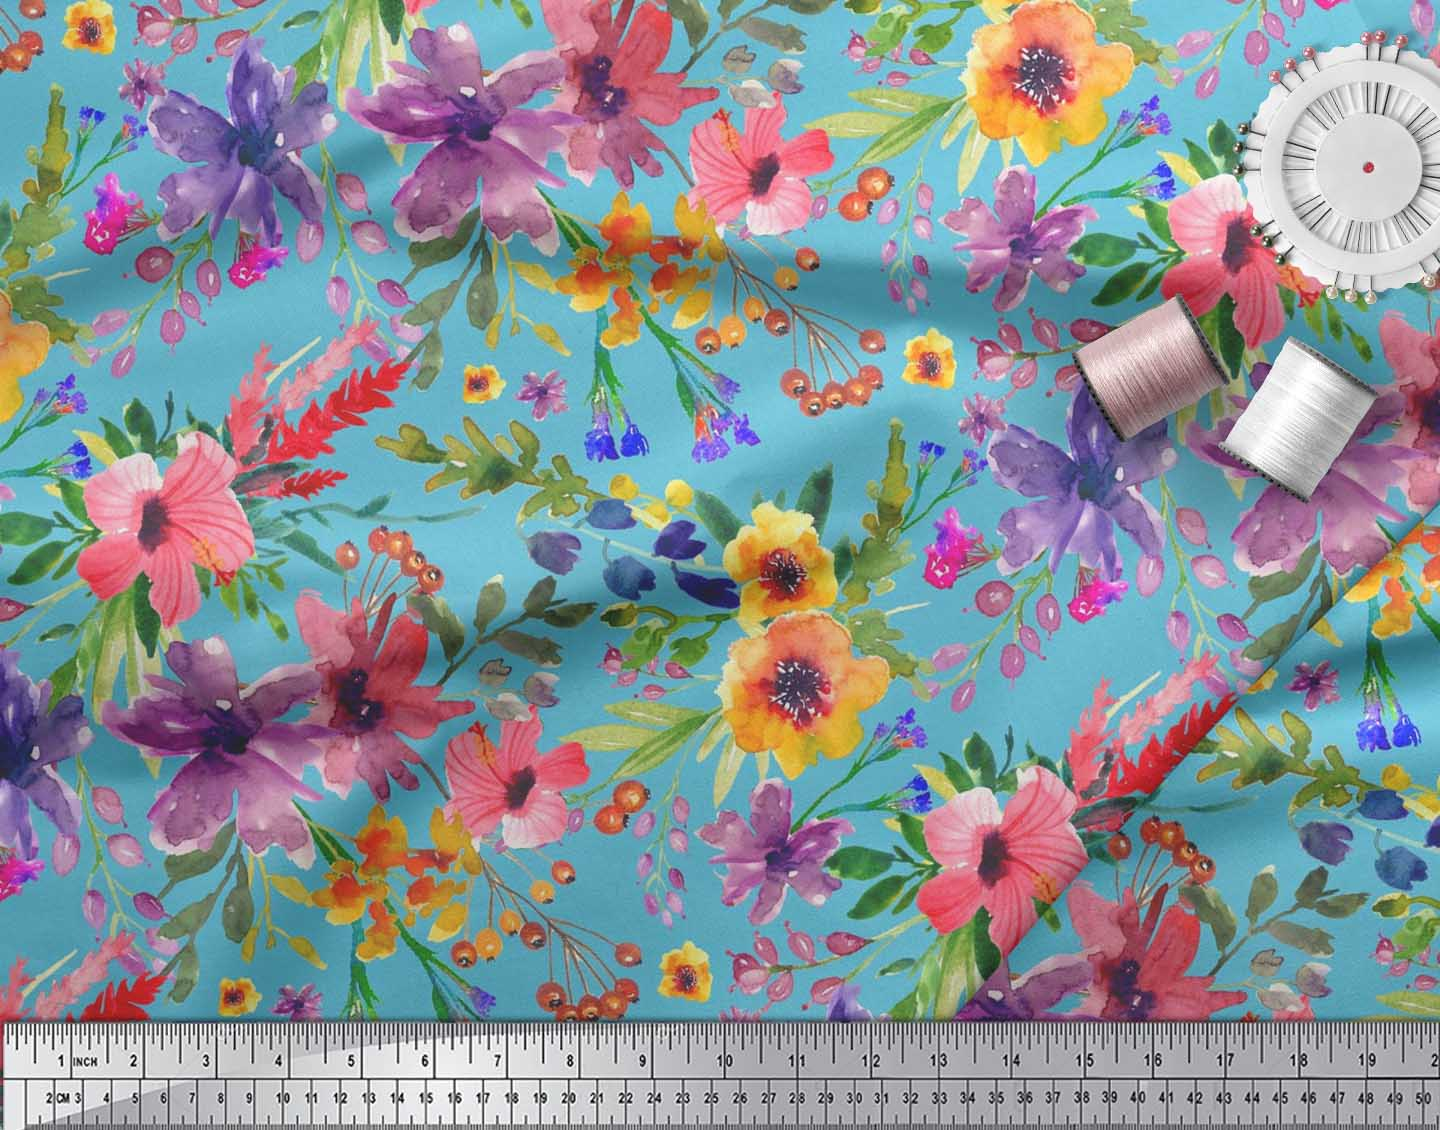 Soimoi-Blue-Cotton-Poplin-Fabric-Flower-amp-Leaves-Watercolor-Fabric-xfT thumbnail 4